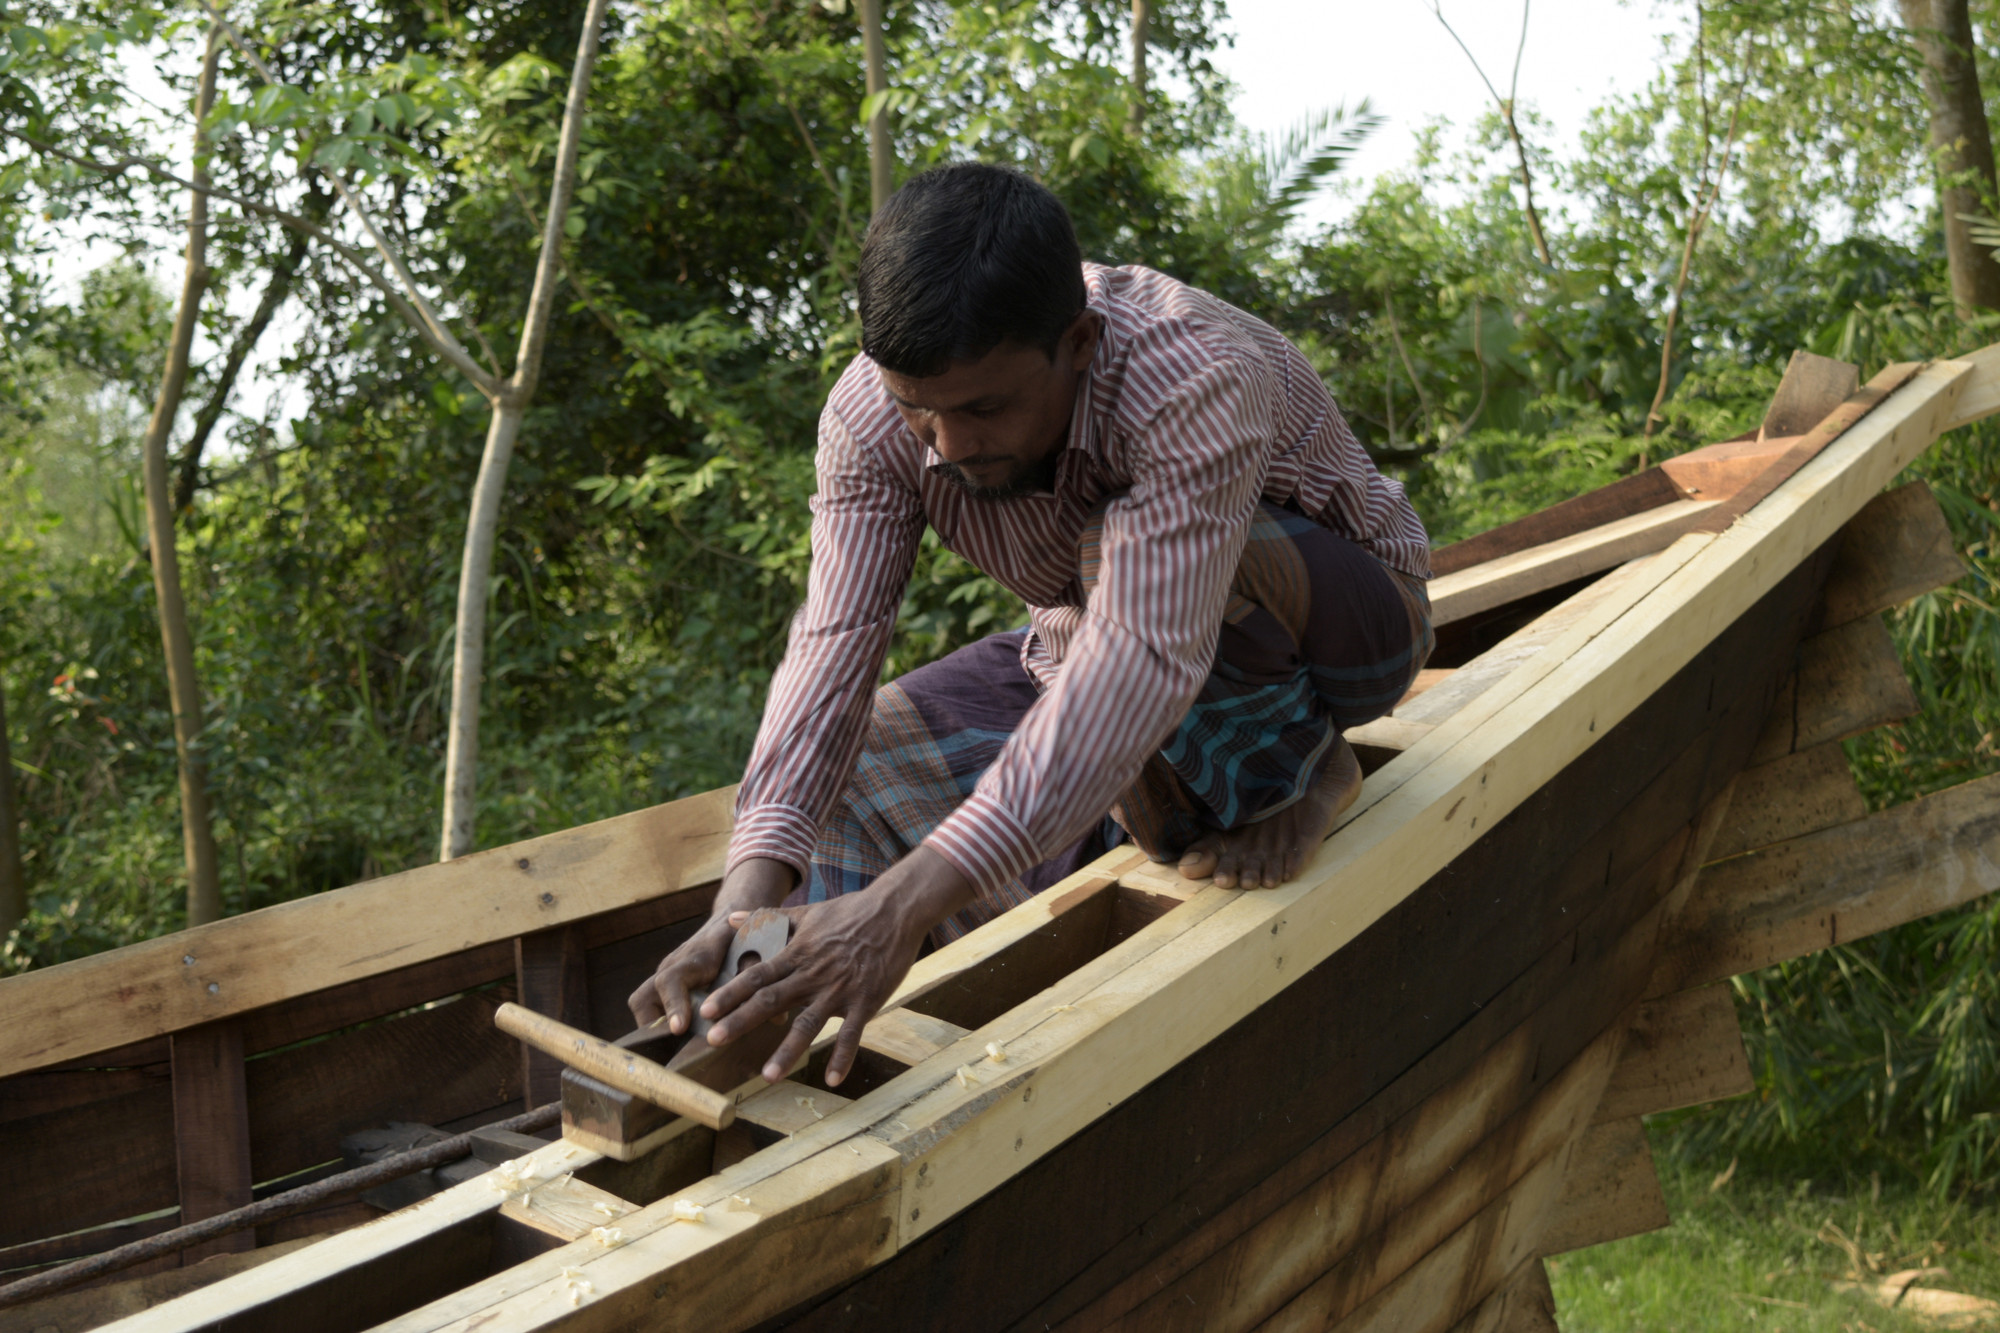 Vocational Training Carves Out New Opportunities Featured Image